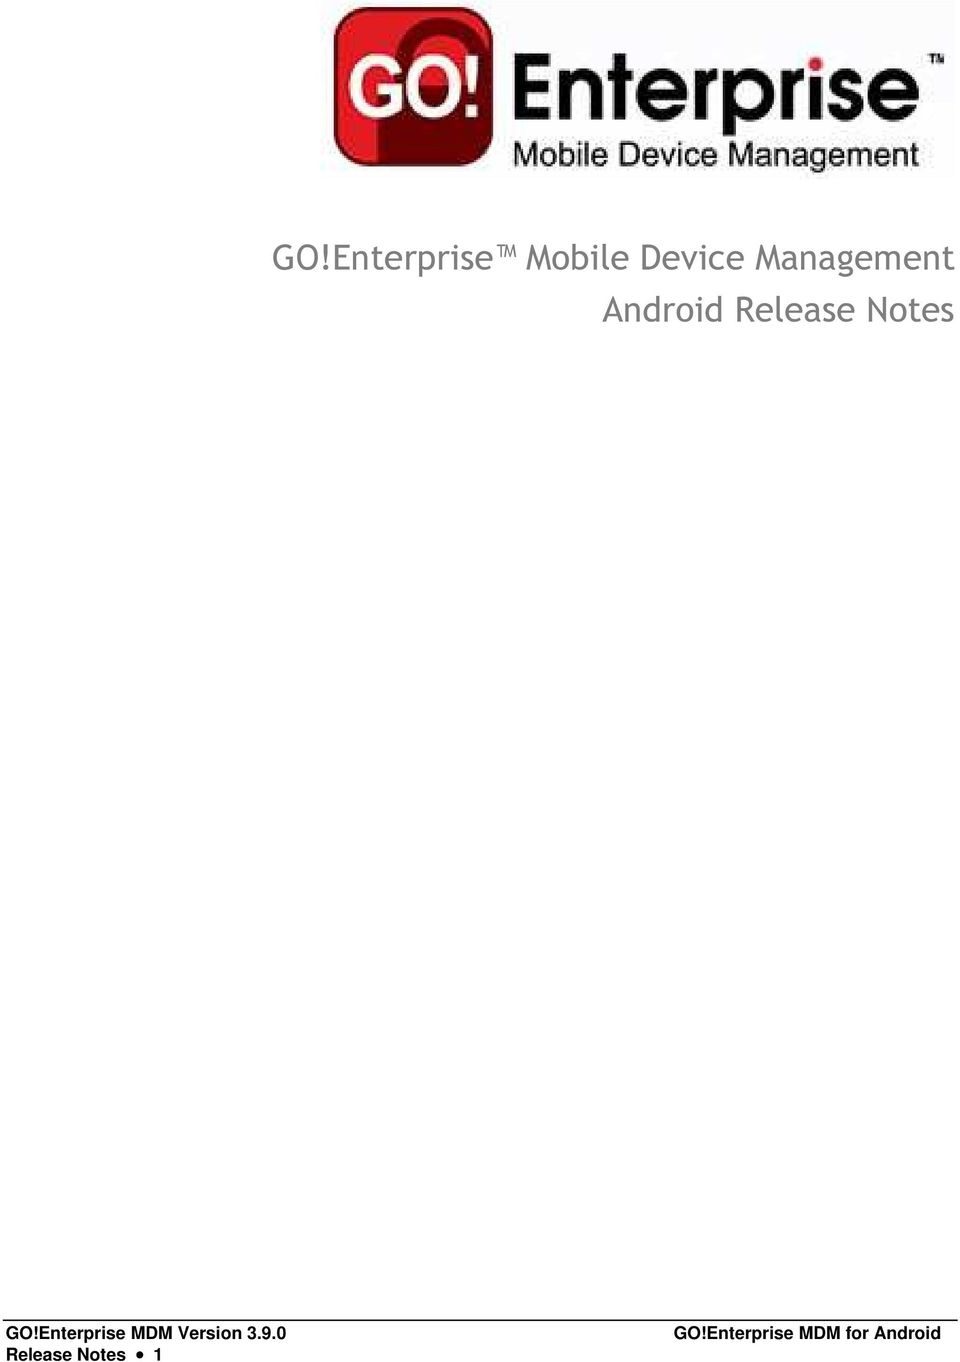 GO!Enterprise MDM Version 3.9.